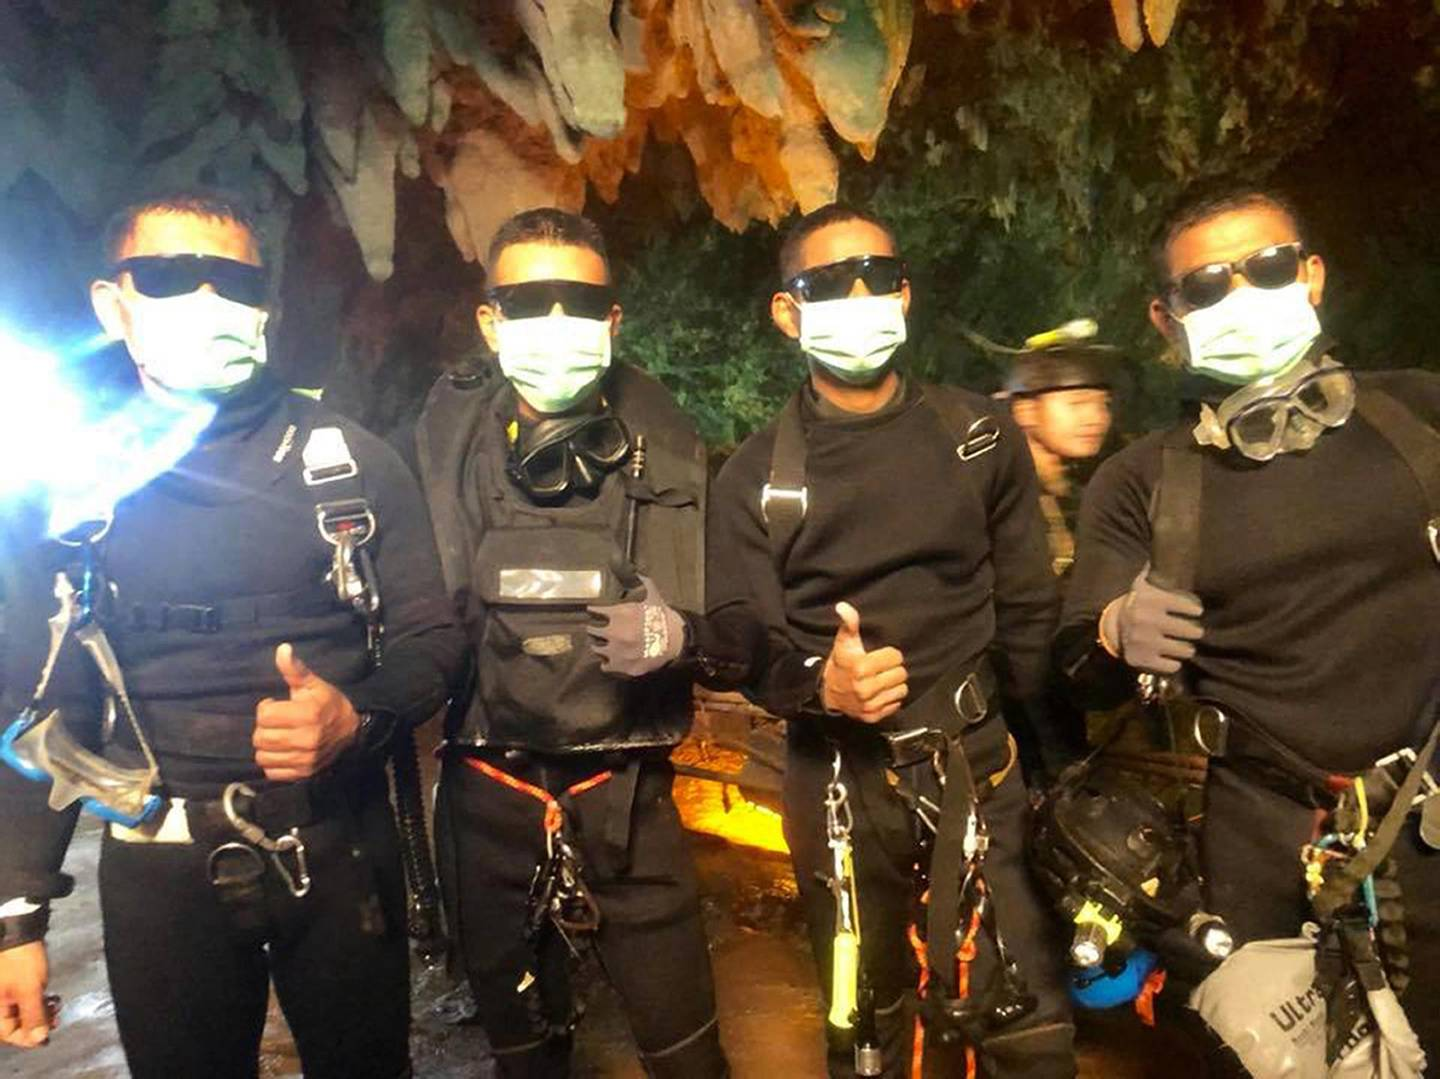 epa06878441 A handout photo made available by Thai Navy SEAL facebook page on 10 July 2018 shows the last four of Thai Navy Seals members, who stayed with the youth soccer team and their assistant coach inside a cave until they all were rescued, at the Tham Luang cave, Khun Nam Nang Non Forest Park in Chiang Rai province, Thailand, 10 July 2018. According to reports, all 12 boys of a child soccer team and their assistant coach have been rescued and evacuated to a hospital. The 12 youth and their assistant coach have been trapped in Tham Luang cave since 23 June 2018.  EPA/ROYAL THAI NAVY / HANDOUT  HANDOUT EDITORIAL USE ONLY/NO SALES